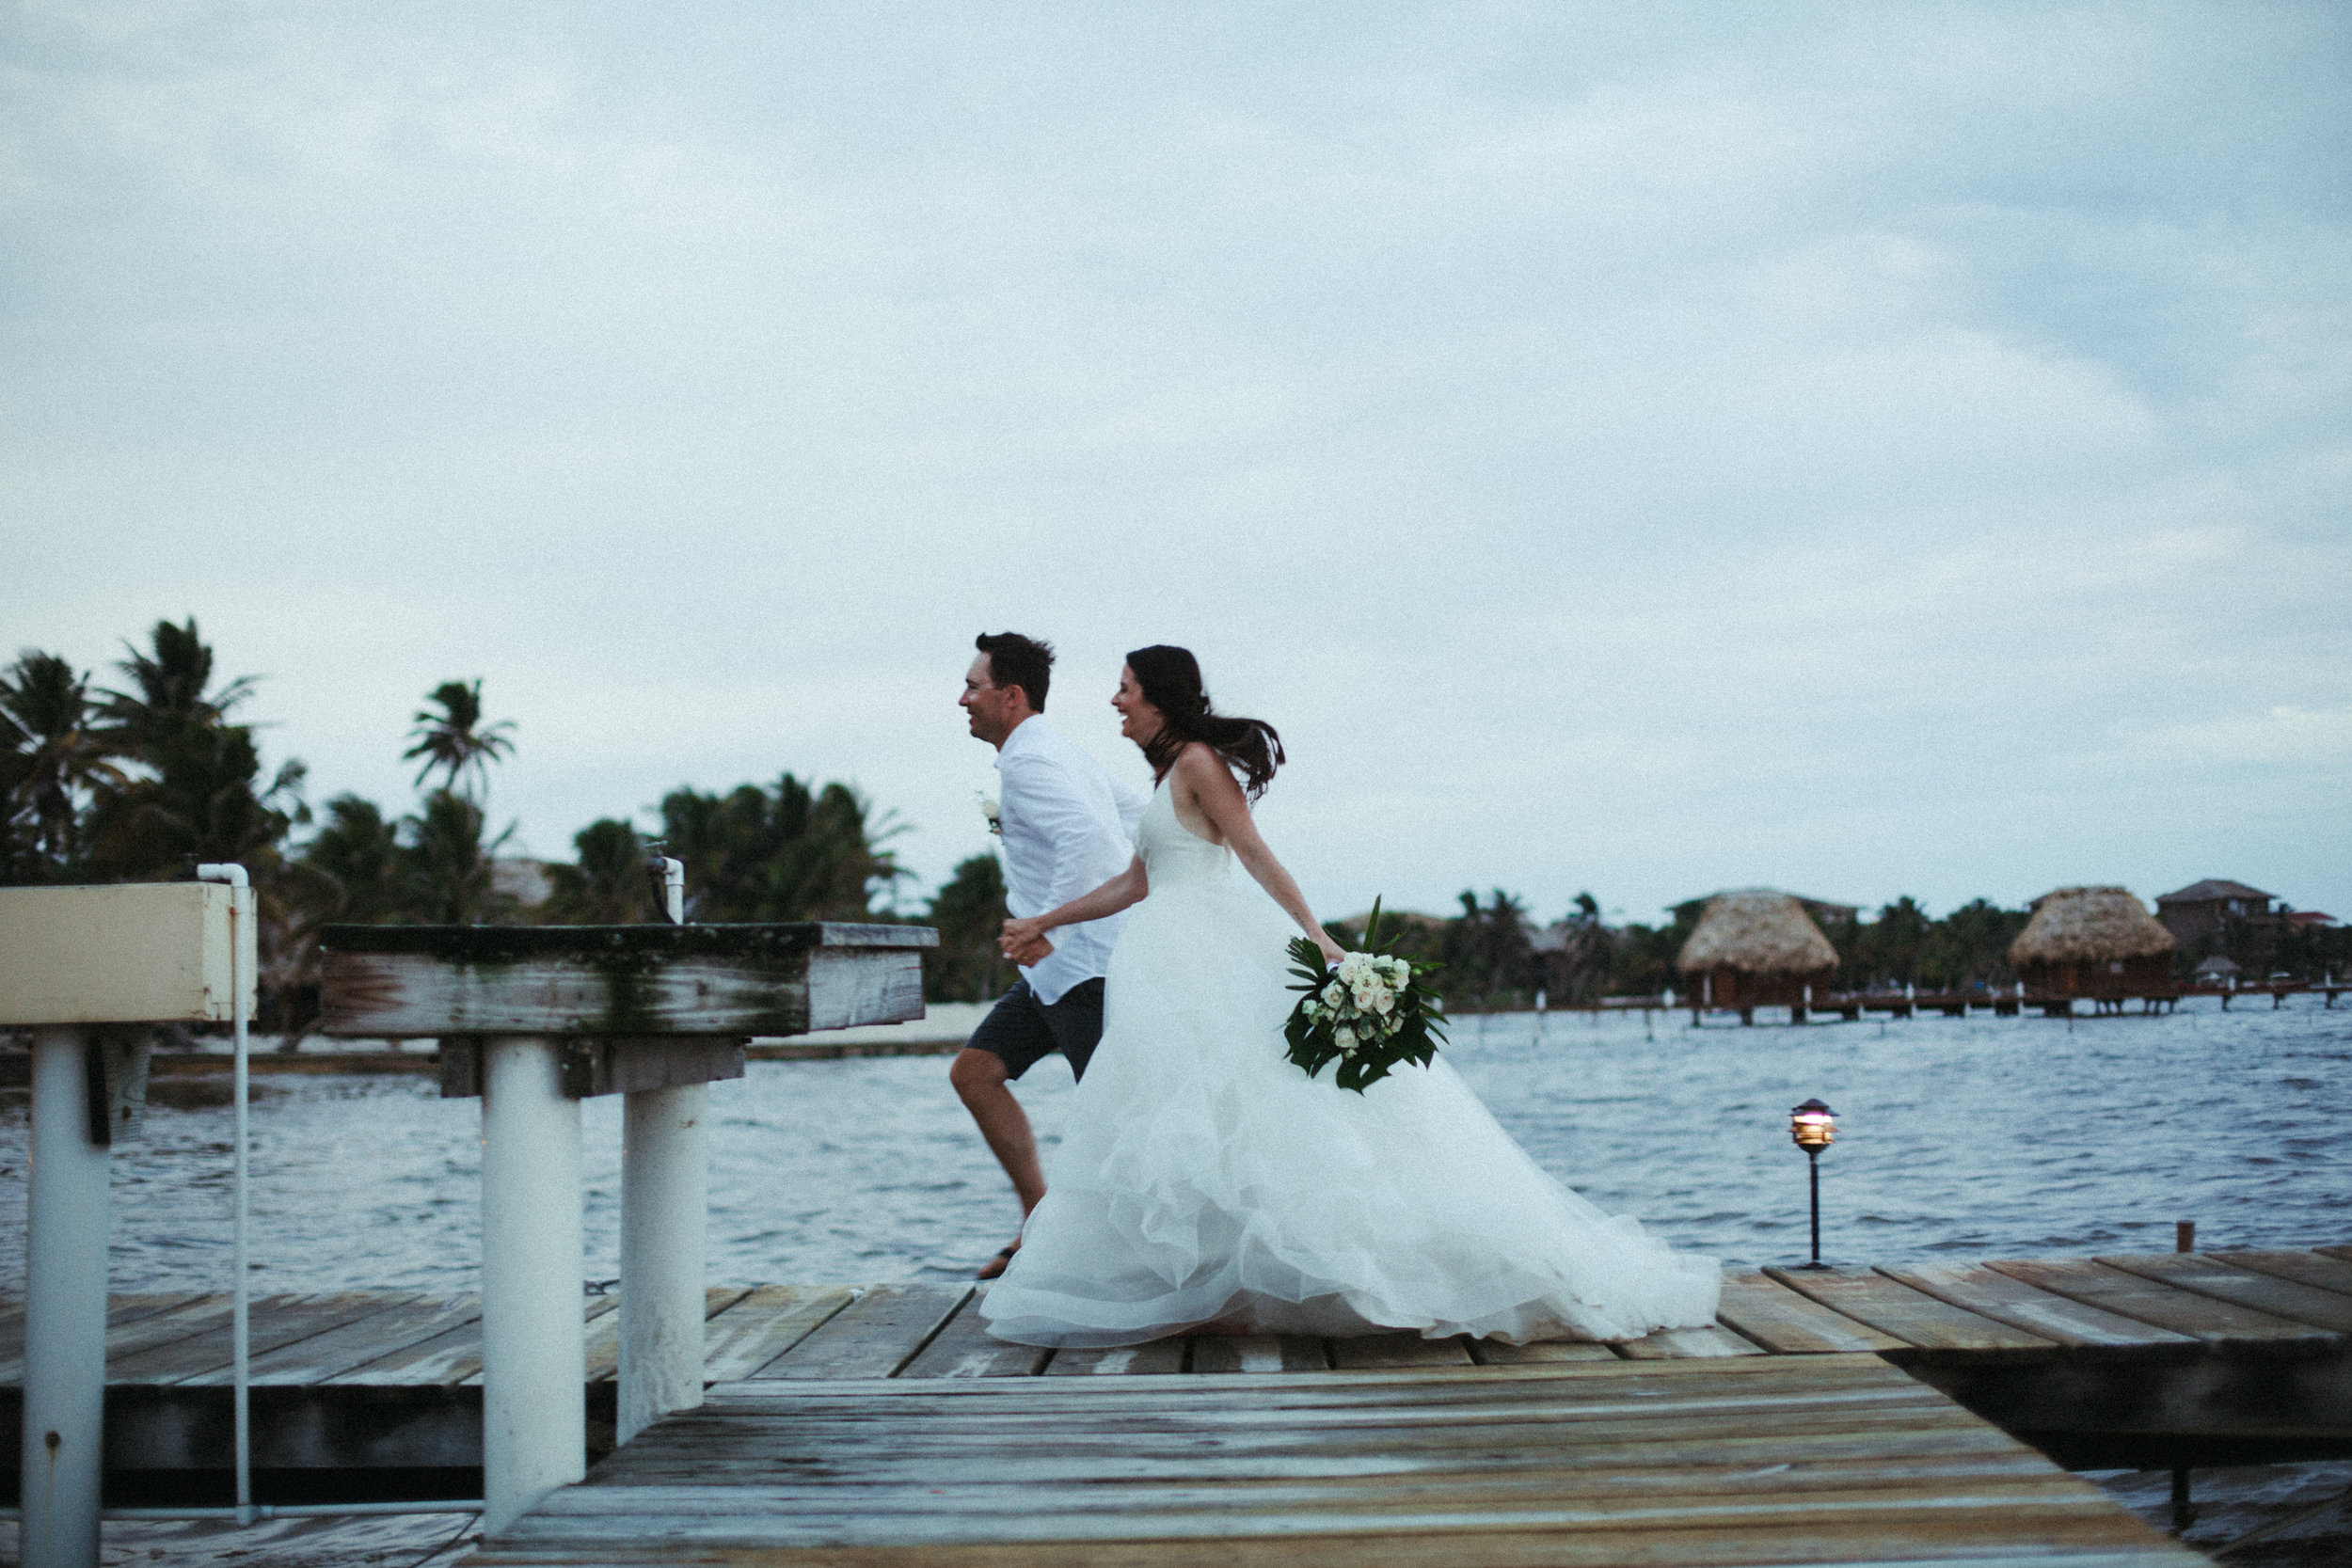 san-pescador-belize-wedding-christinemariephoto-j-k-139.jpg